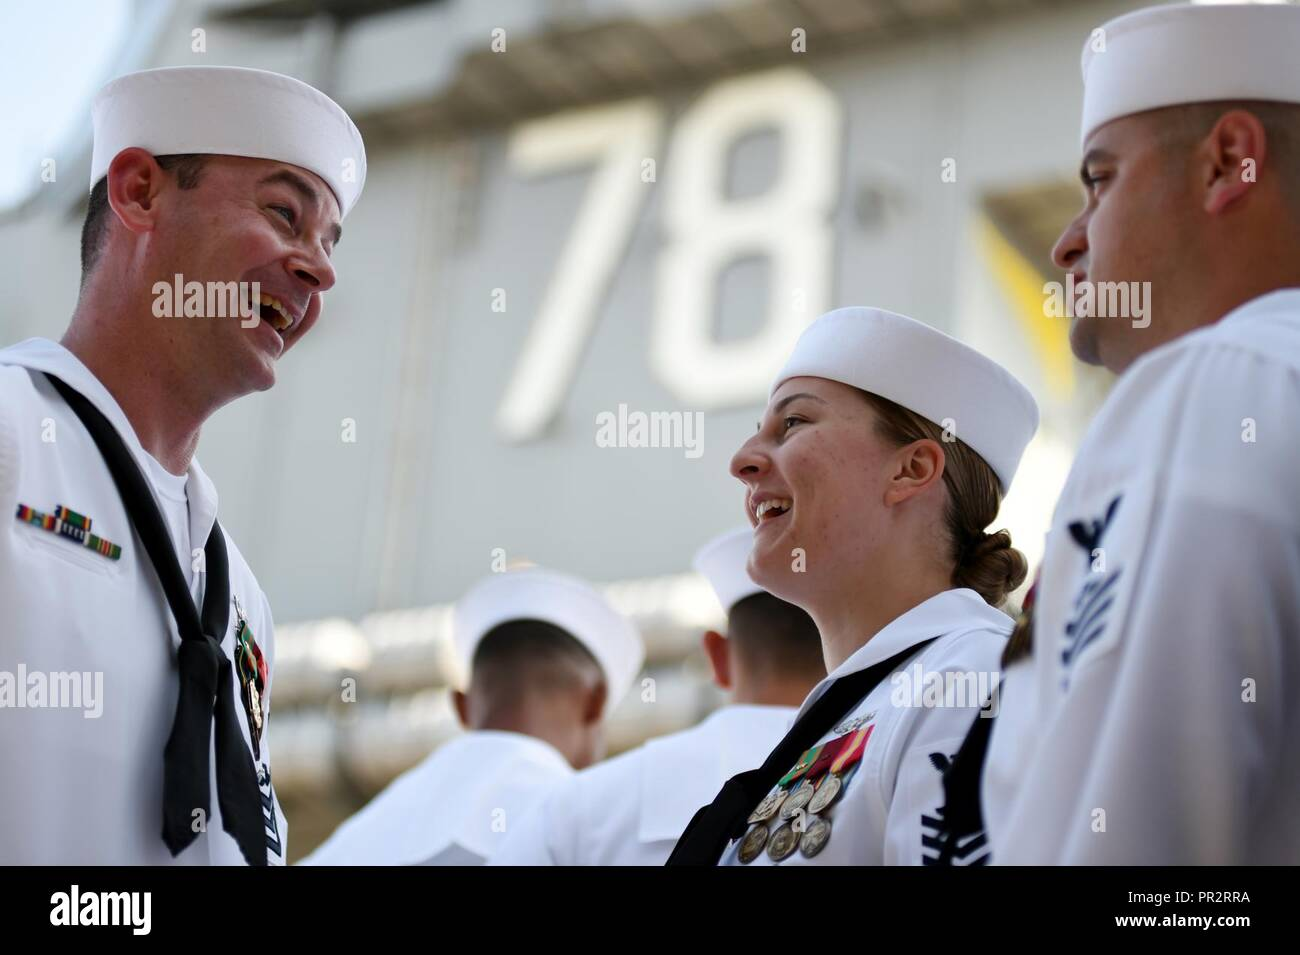 e8301e09 (July 22, 2017) Sailors talk before the aircraft carrier USS Gerald R.  Ford's (CVN 78) commissioning ...